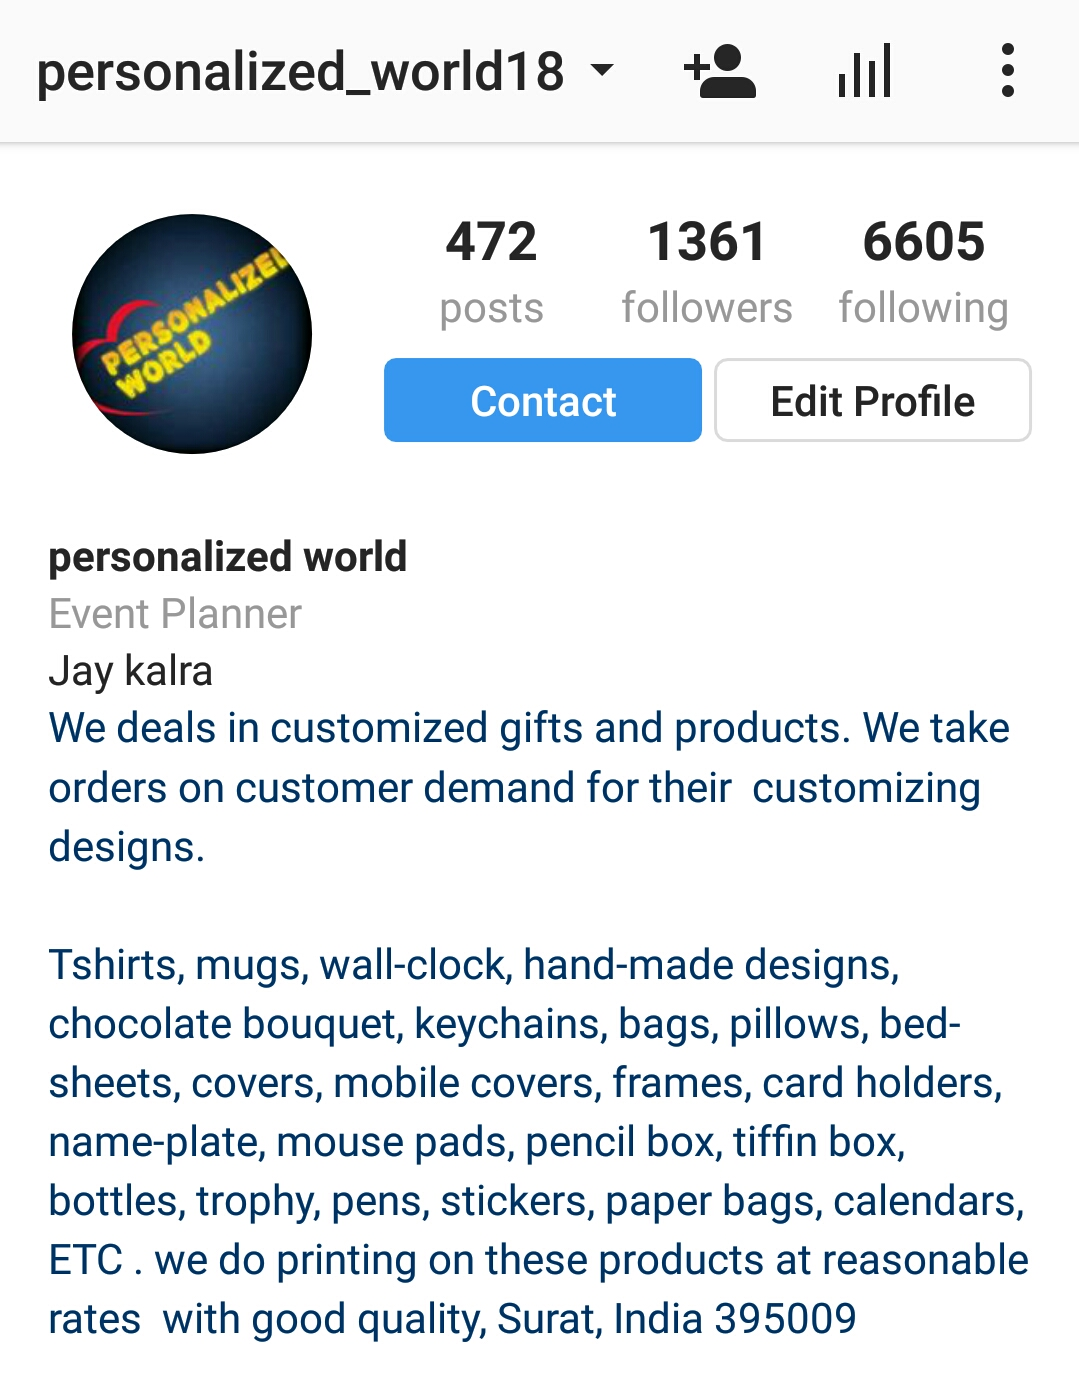 FOLLOW US AT INSTAGRAM . FOR BEAUTIFUL AND UNIQUE PRODUCTS FOR GIFTING TO YOUR LOVED ONES .   https://www.instagram.com/personalized_world18  for queries call us at 7490084454